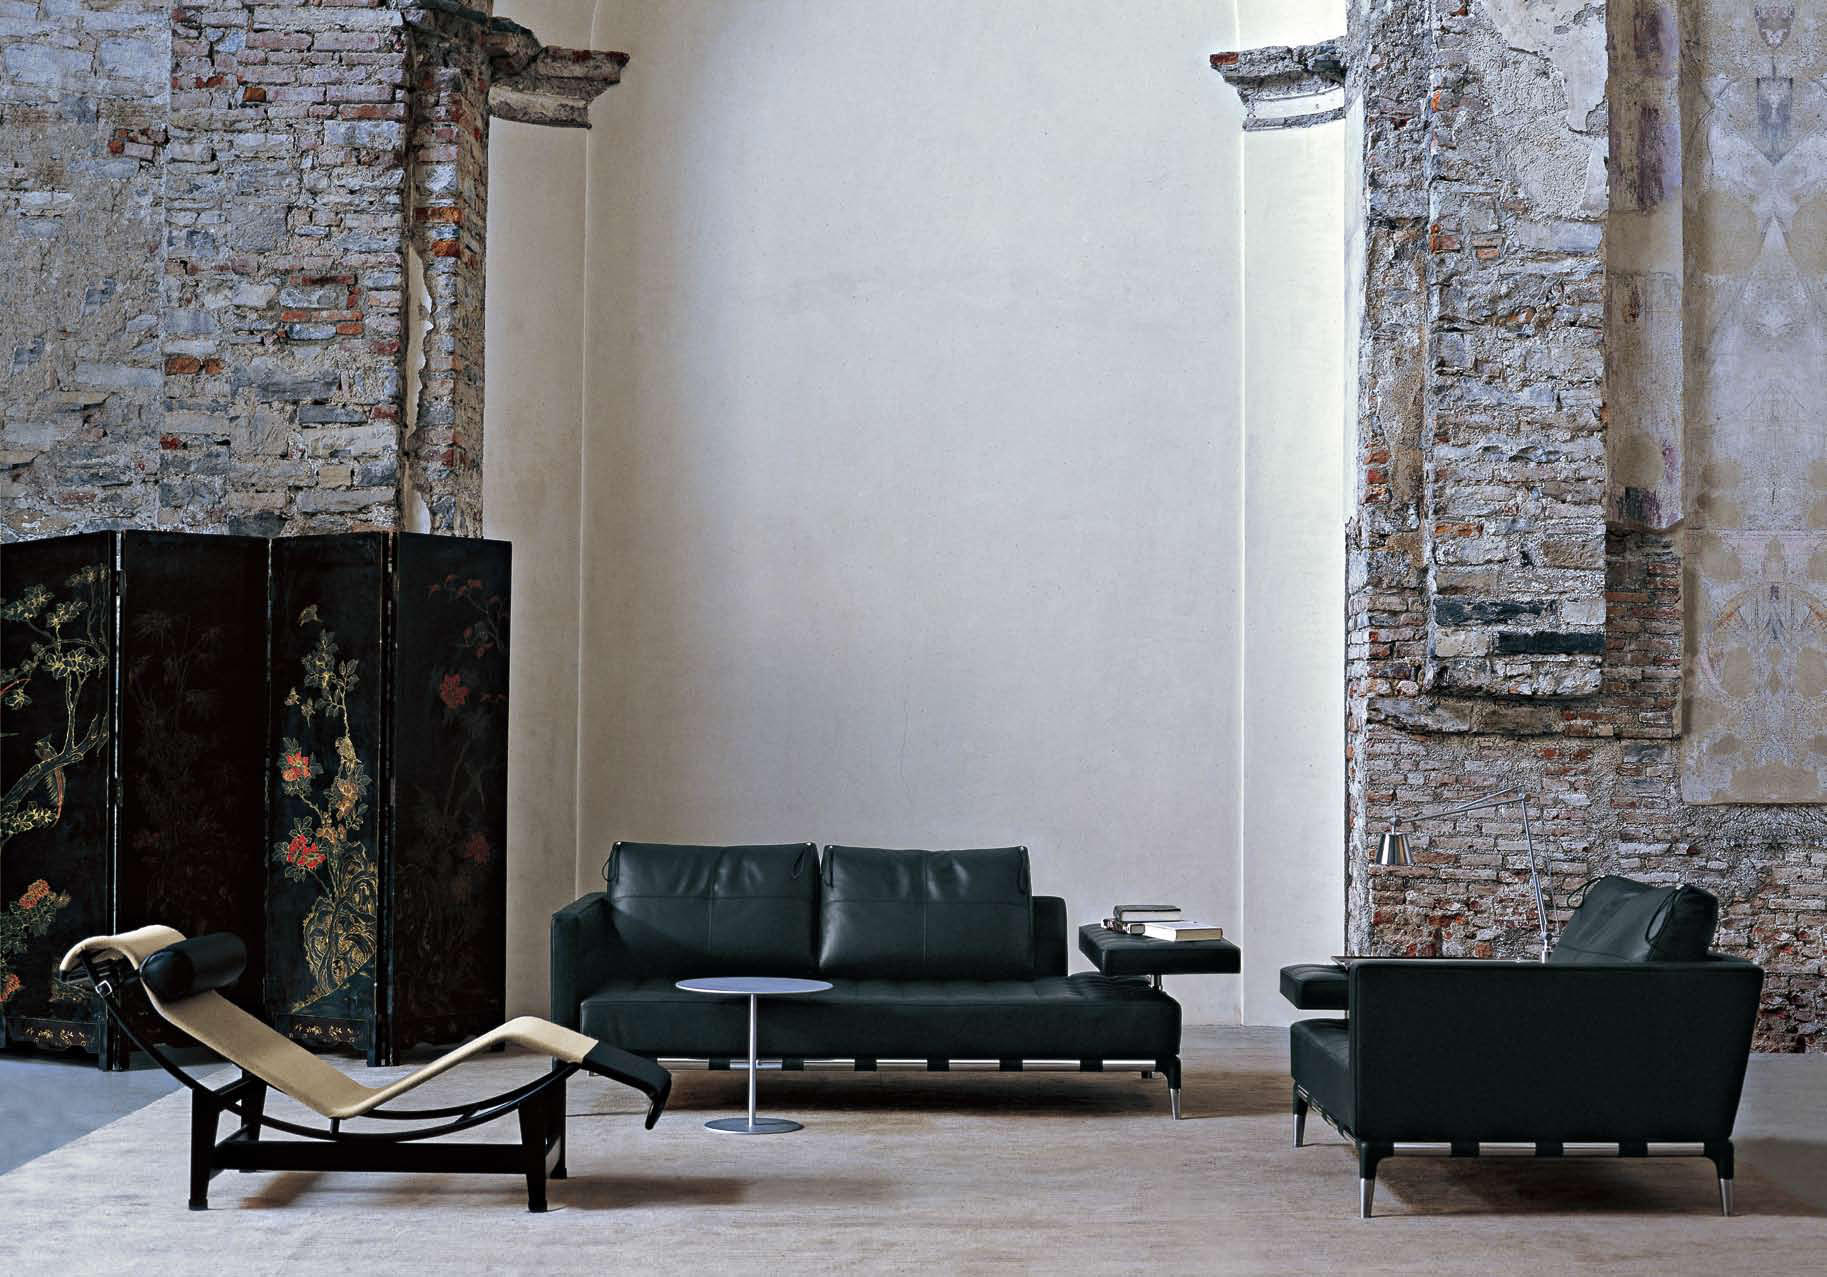 241 Priv 201 Armchairs From Cassina Architonic